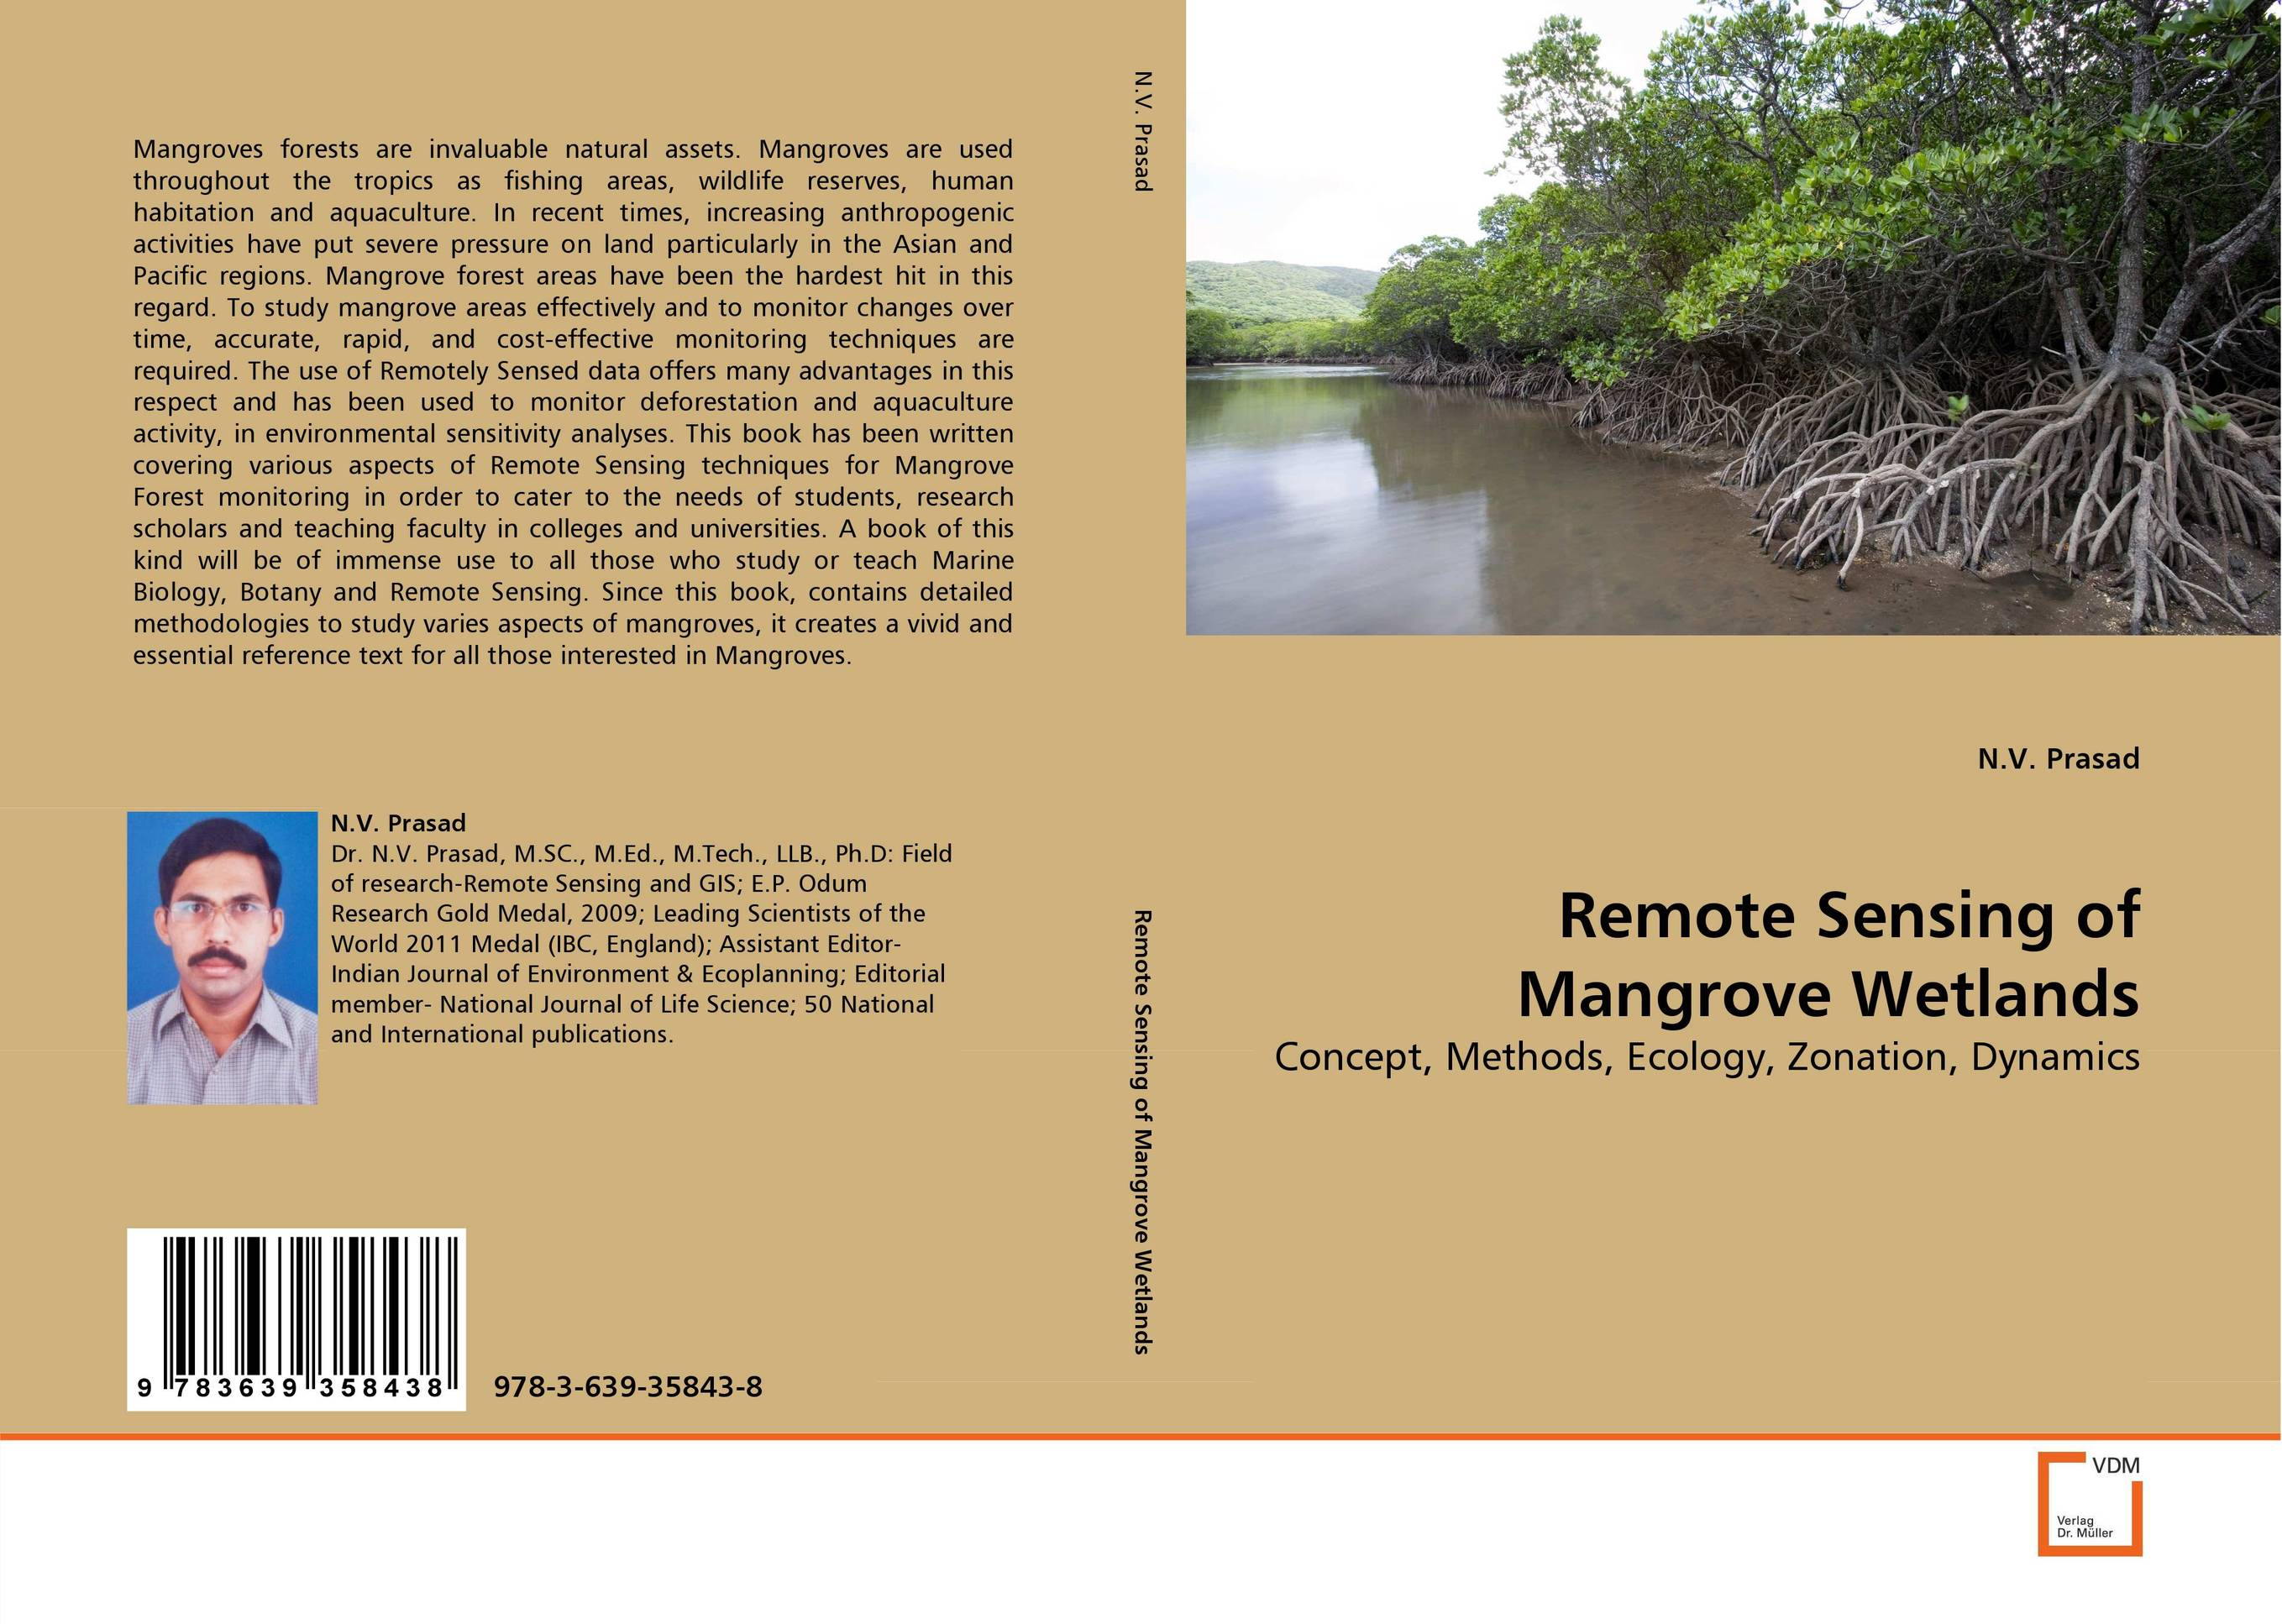 Remote Sensing of Mangrove Wetlands islamic banking efficiency